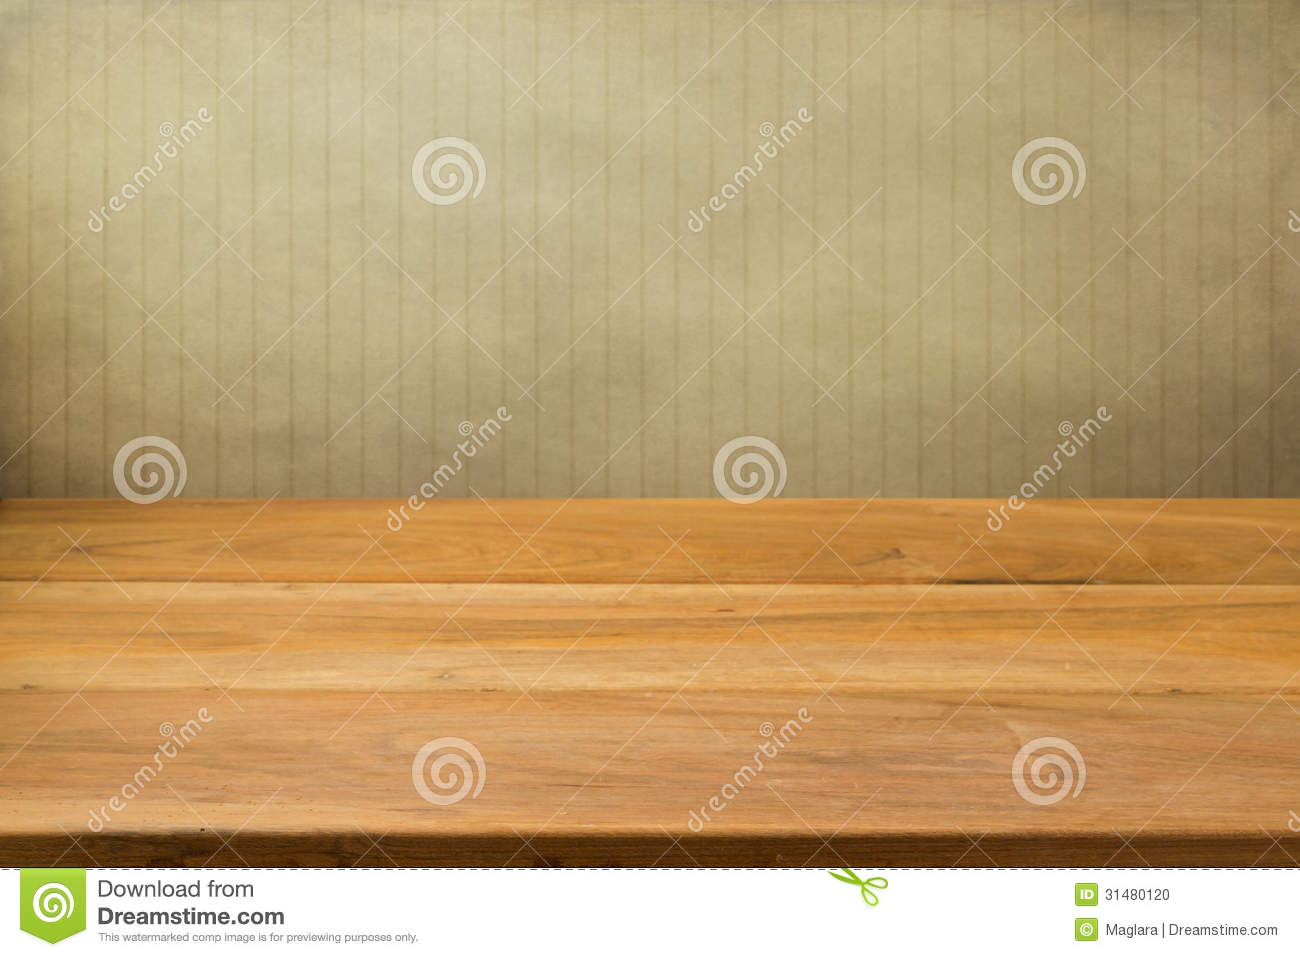 Empty wooden table over grunge striped background.